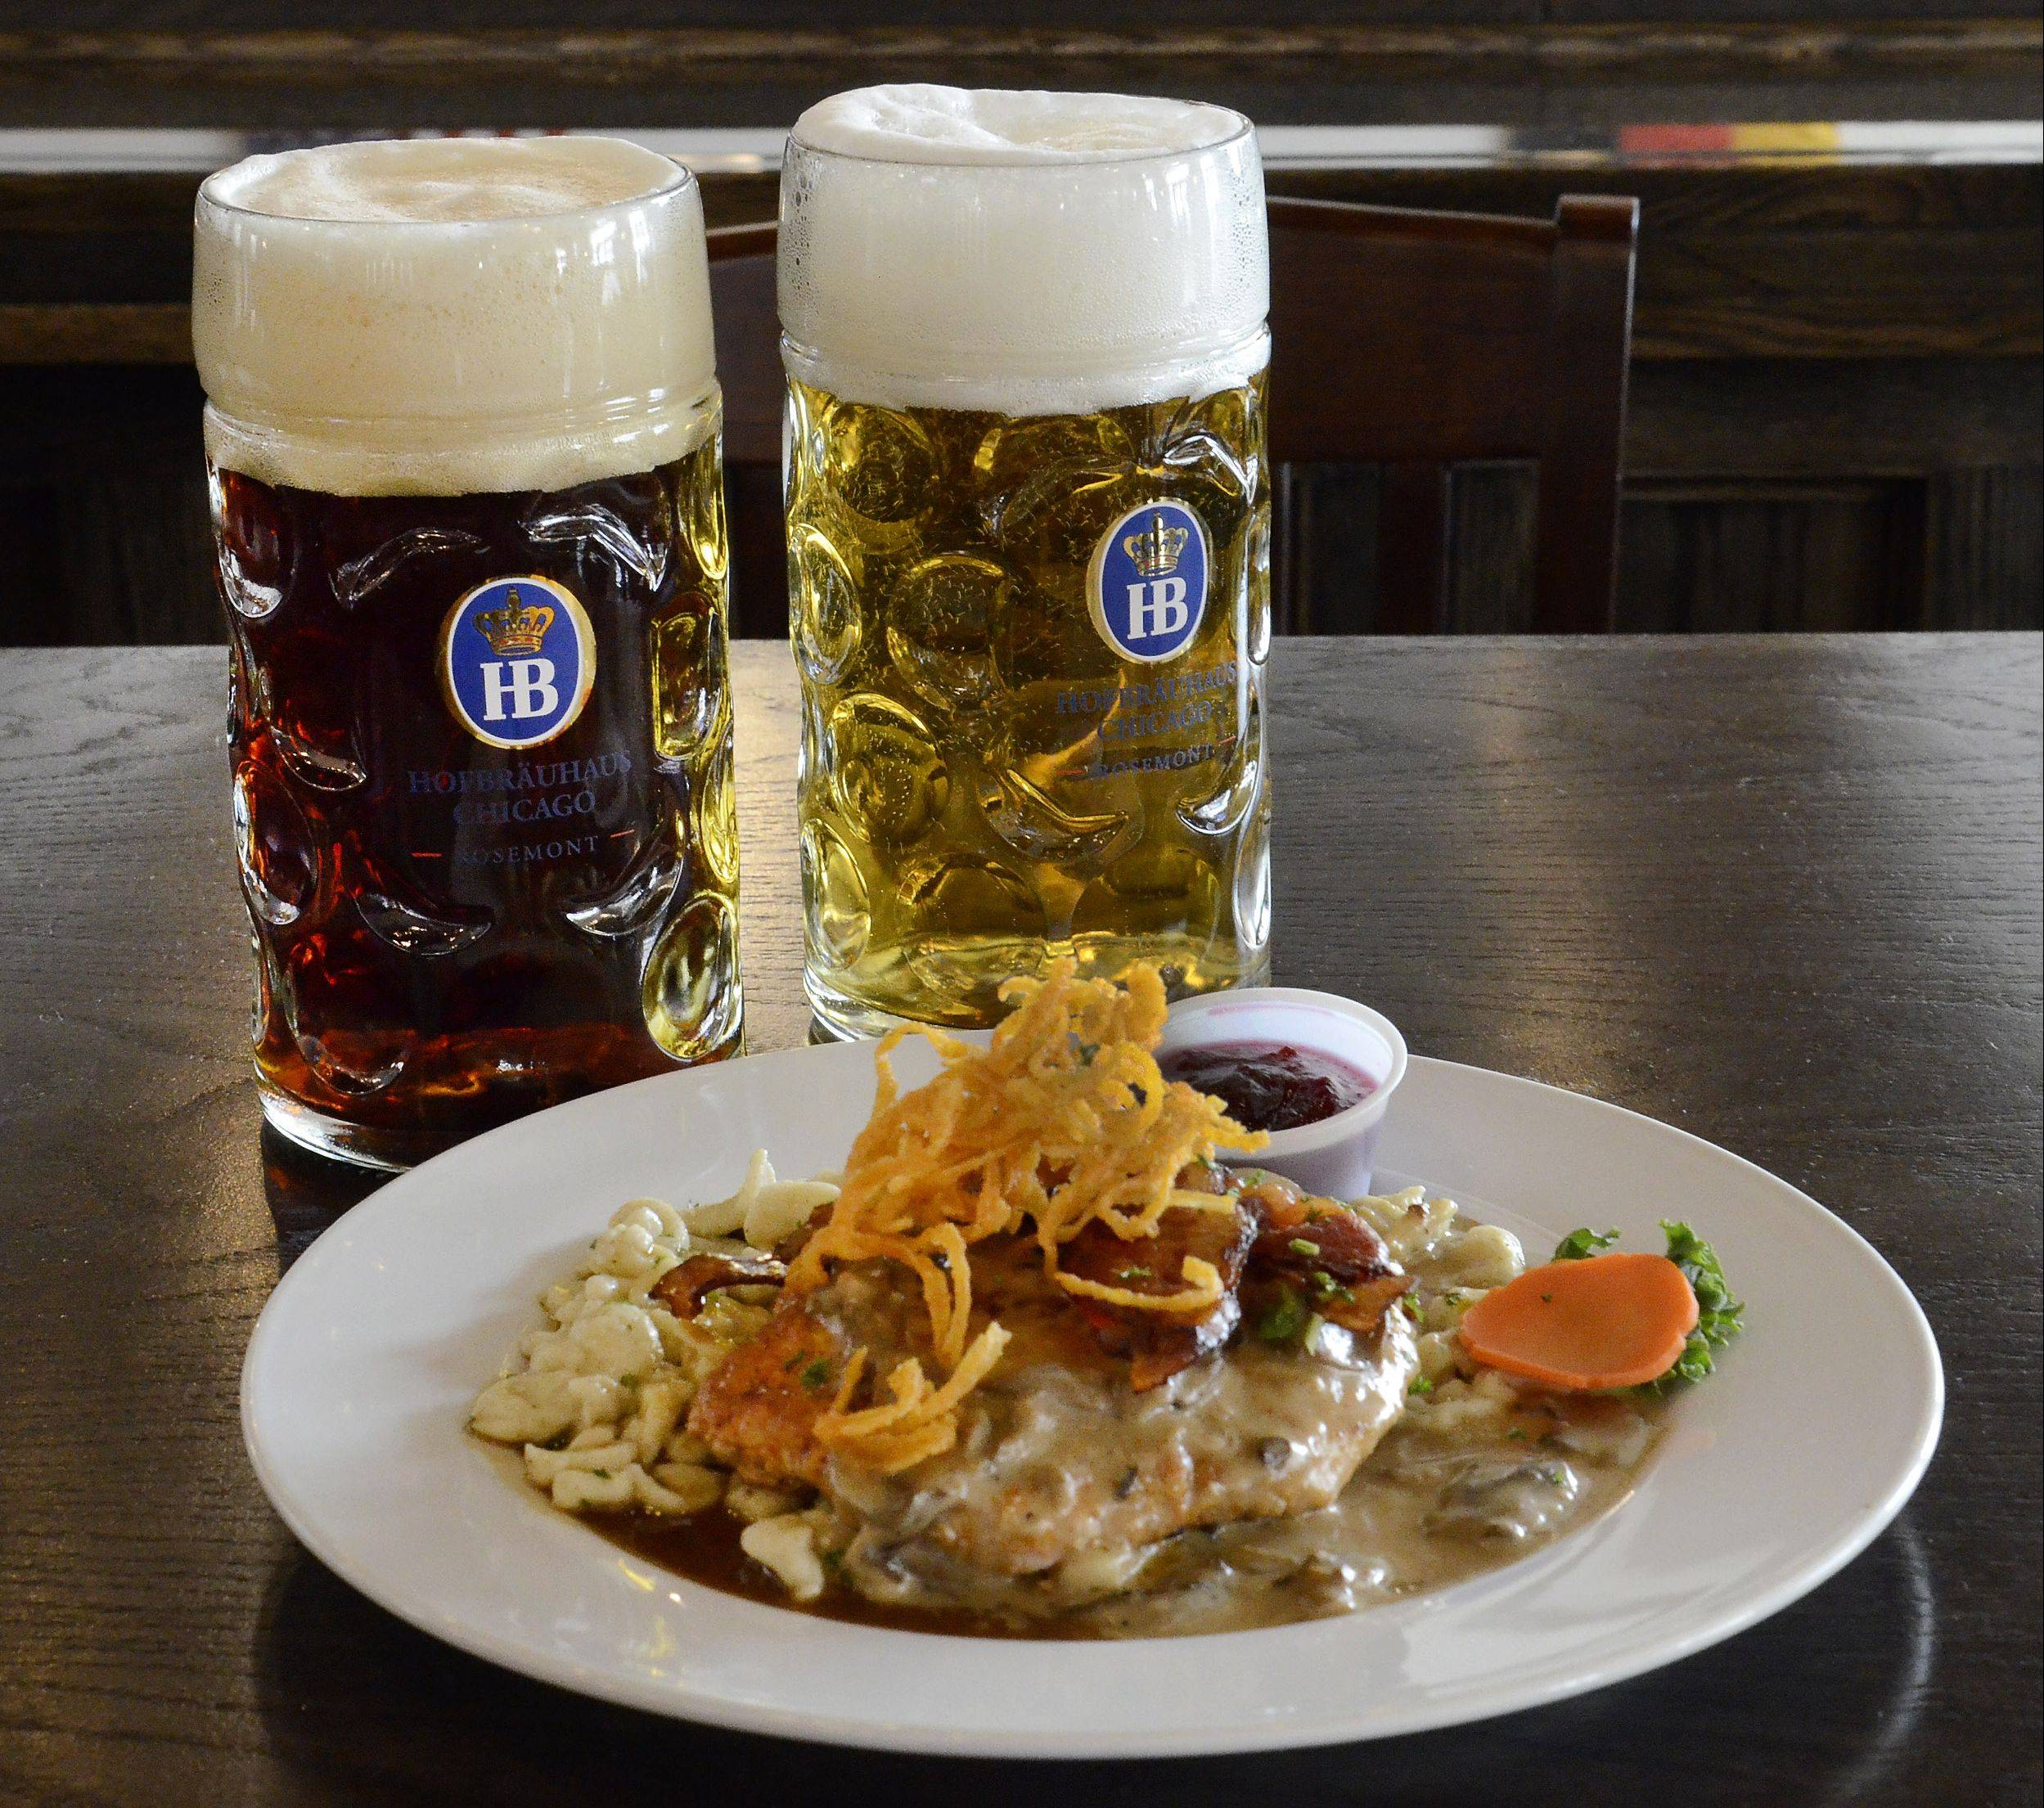 Hofbrauhaus is home to authentic German fare, like jagerschnitzel, pork cutlet topped with mushroom sauce, bacon and onions. It's served with Bavarian potato salad.